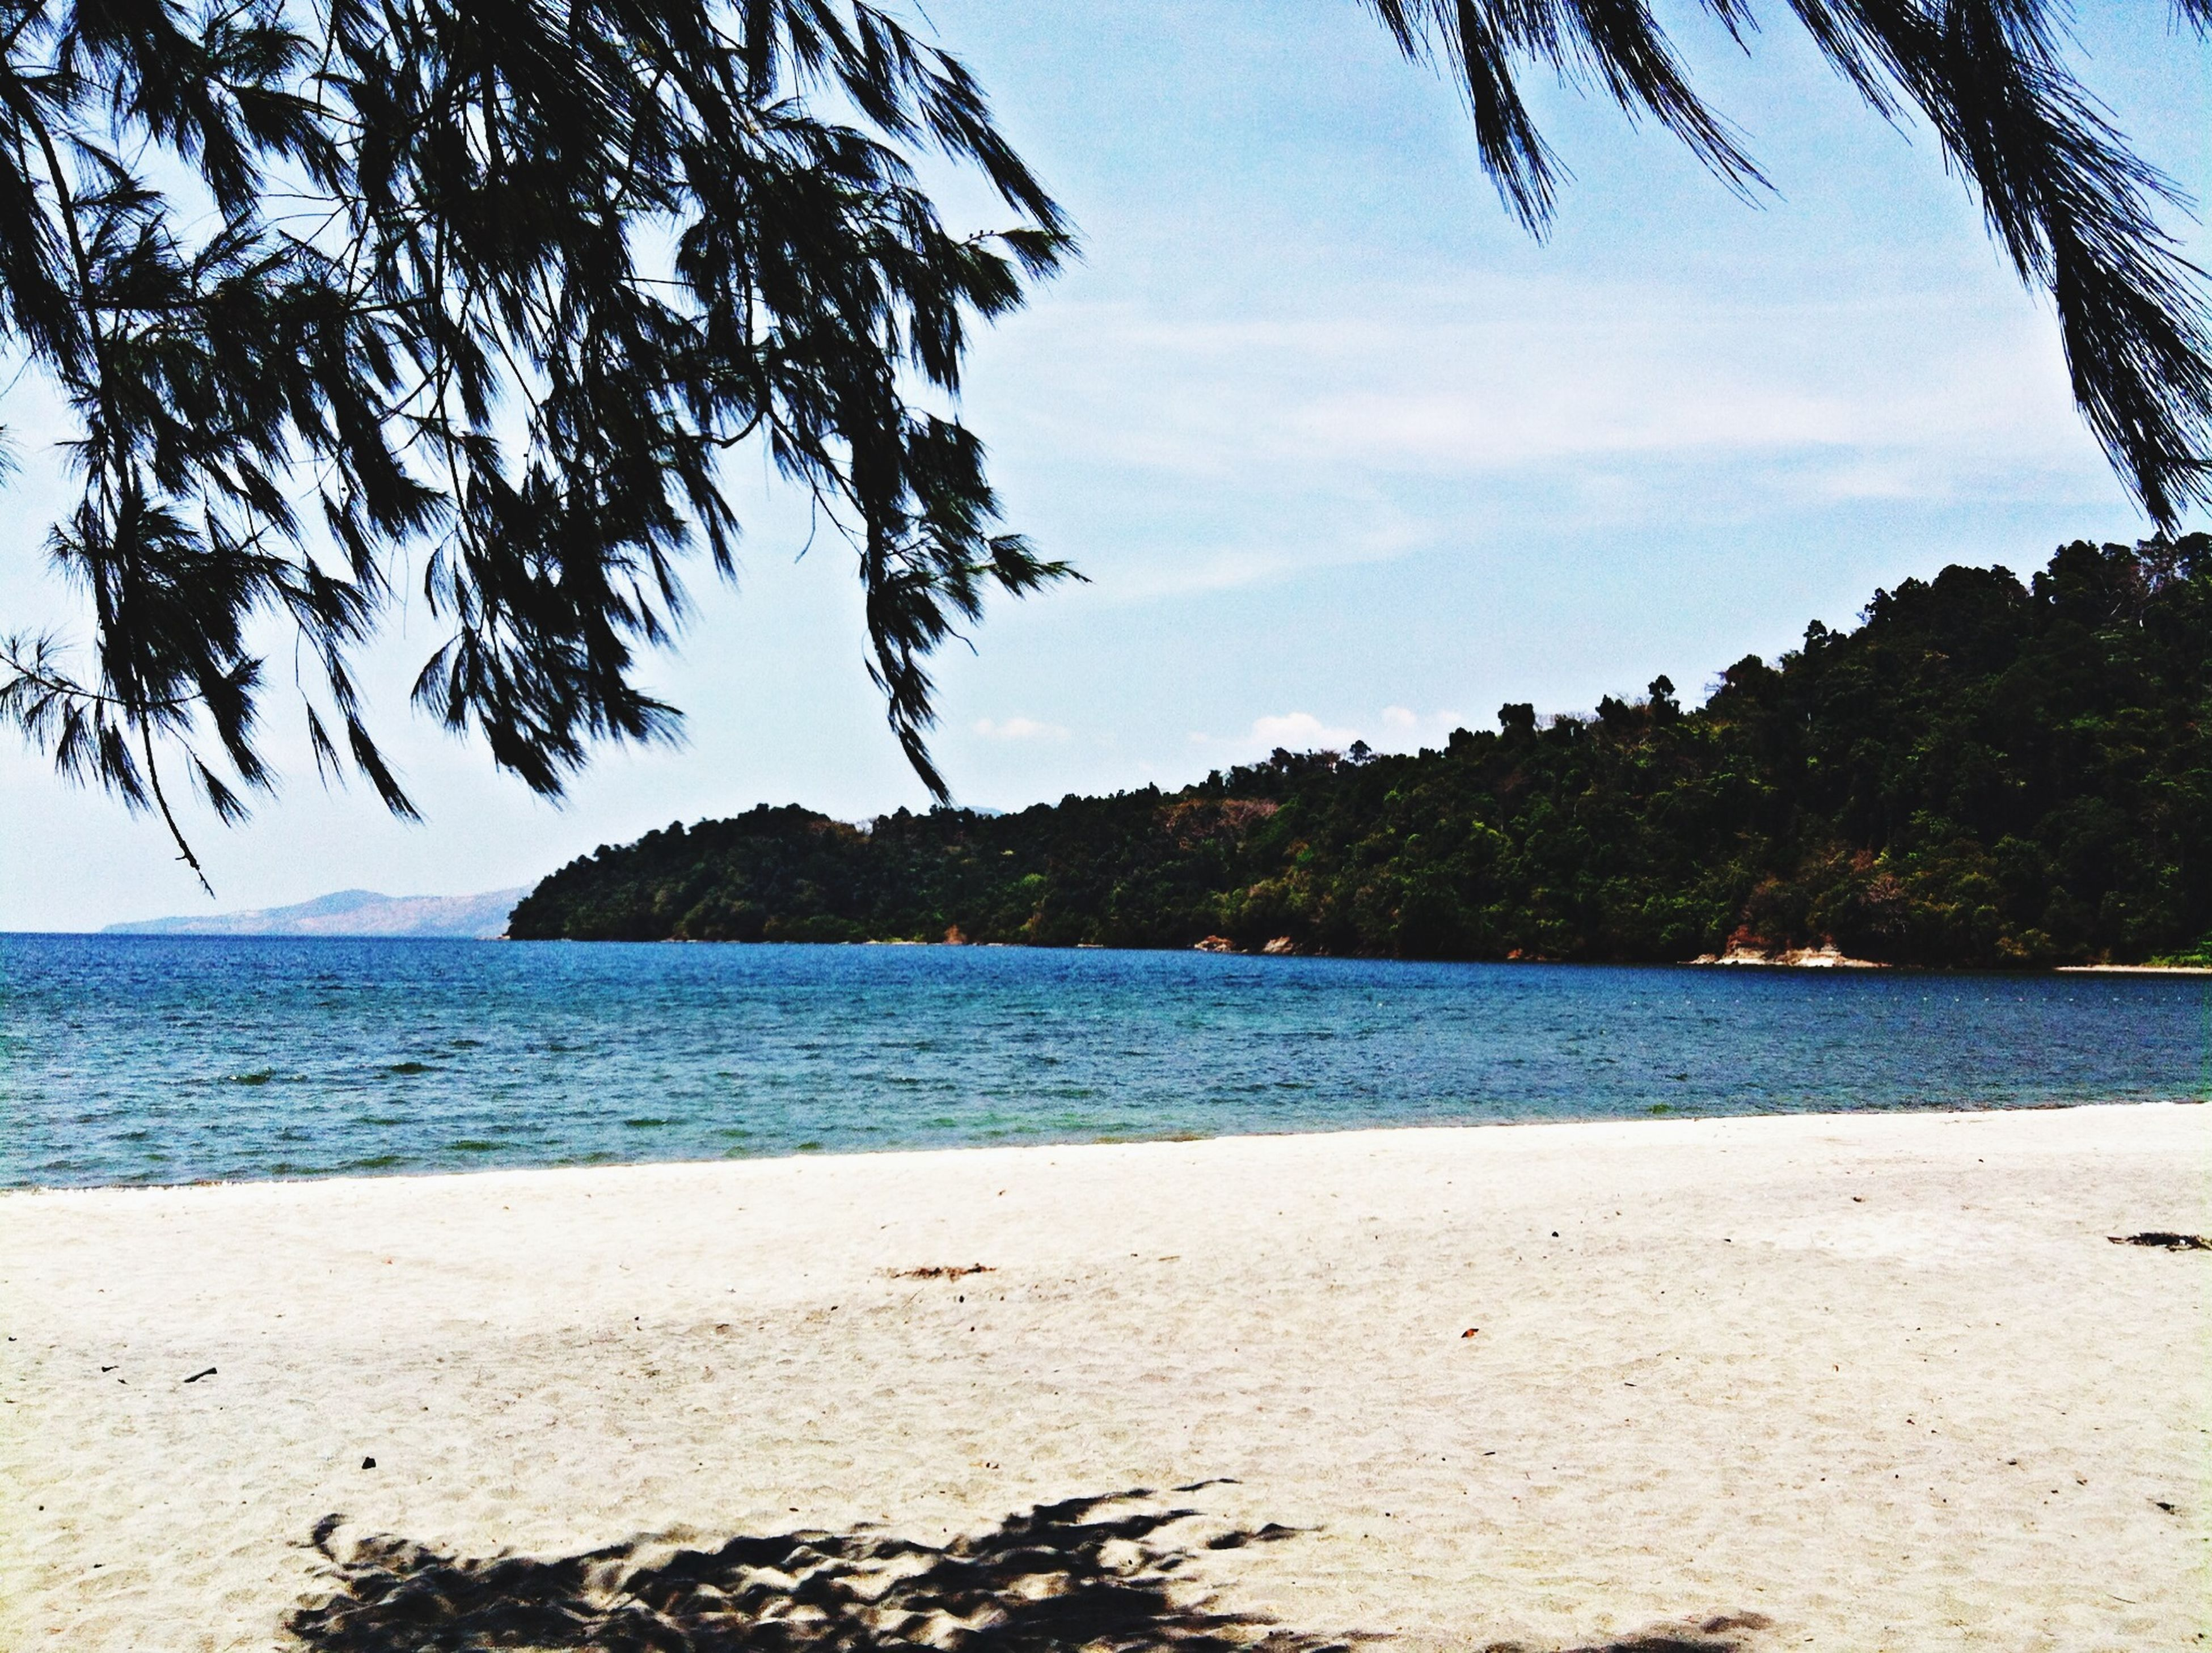 water, tree, beach, sea, tranquil scene, tranquility, sky, scenics, shore, palm tree, beauty in nature, sand, nature, blue, idyllic, mountain, cloud, coastline, growth, outdoors